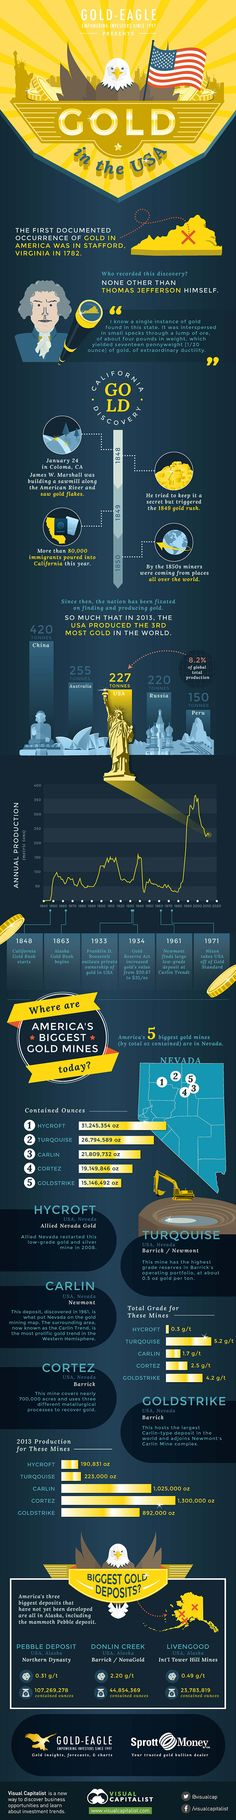 Infographic: Gold History and Mining in the USA | Gold Eagle